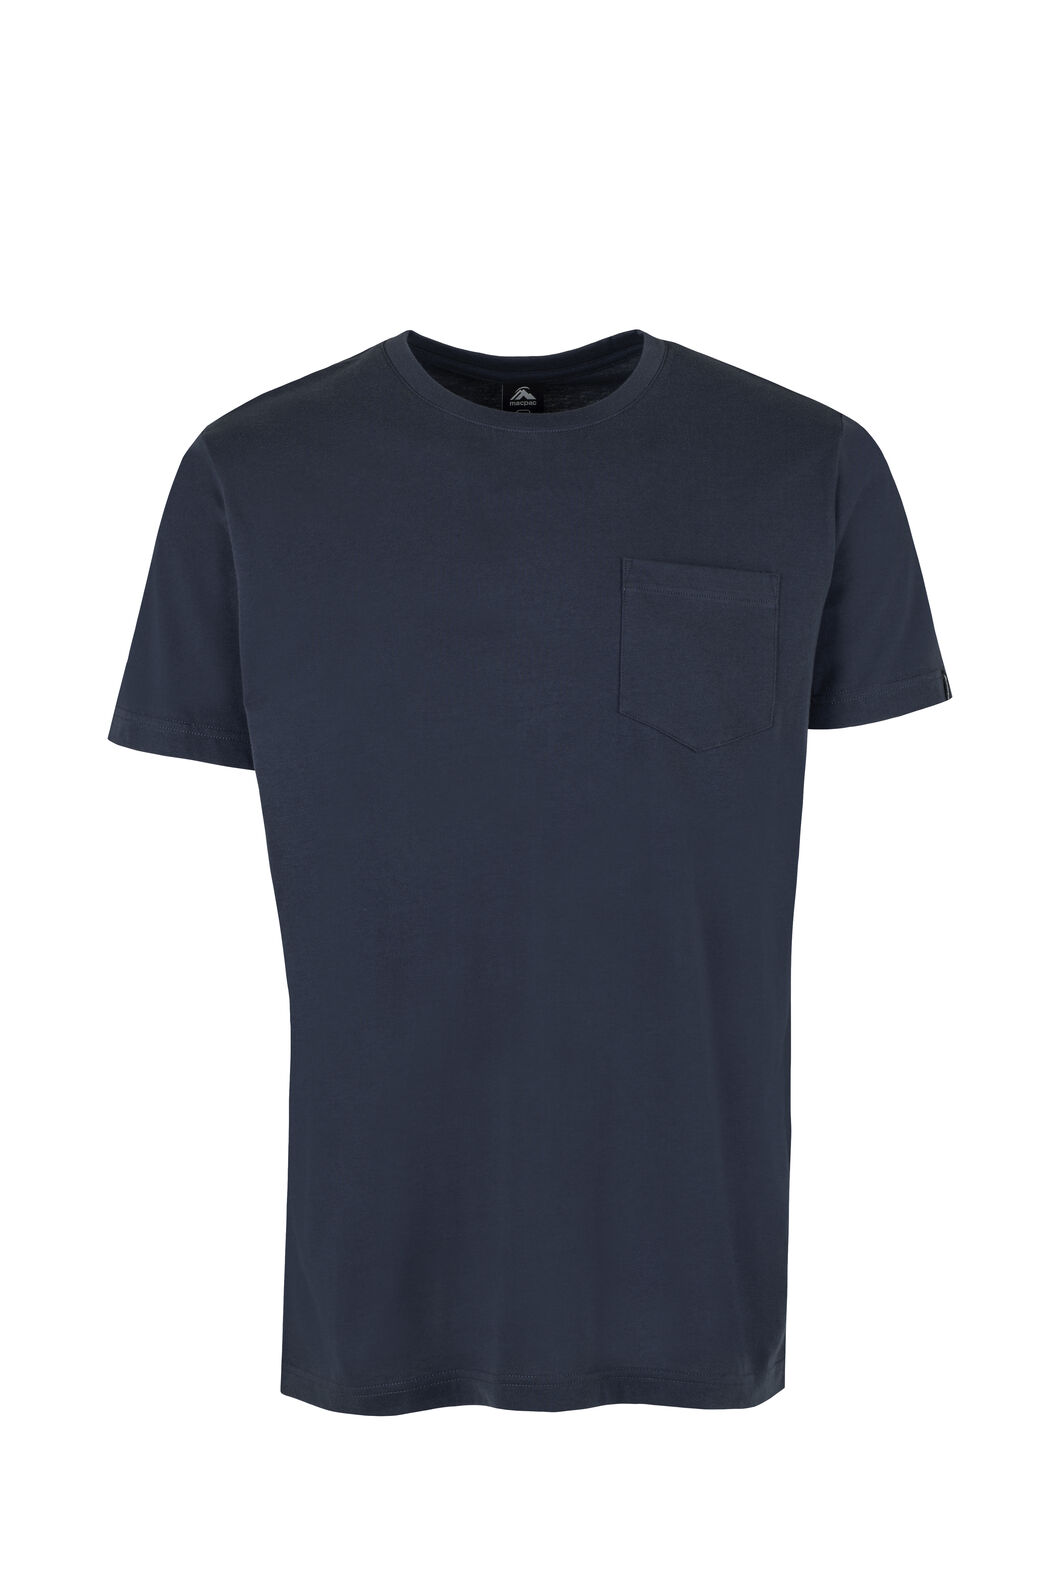 Macpac Pocket Organic Tee — Men's, Mood Indigo, hi-res